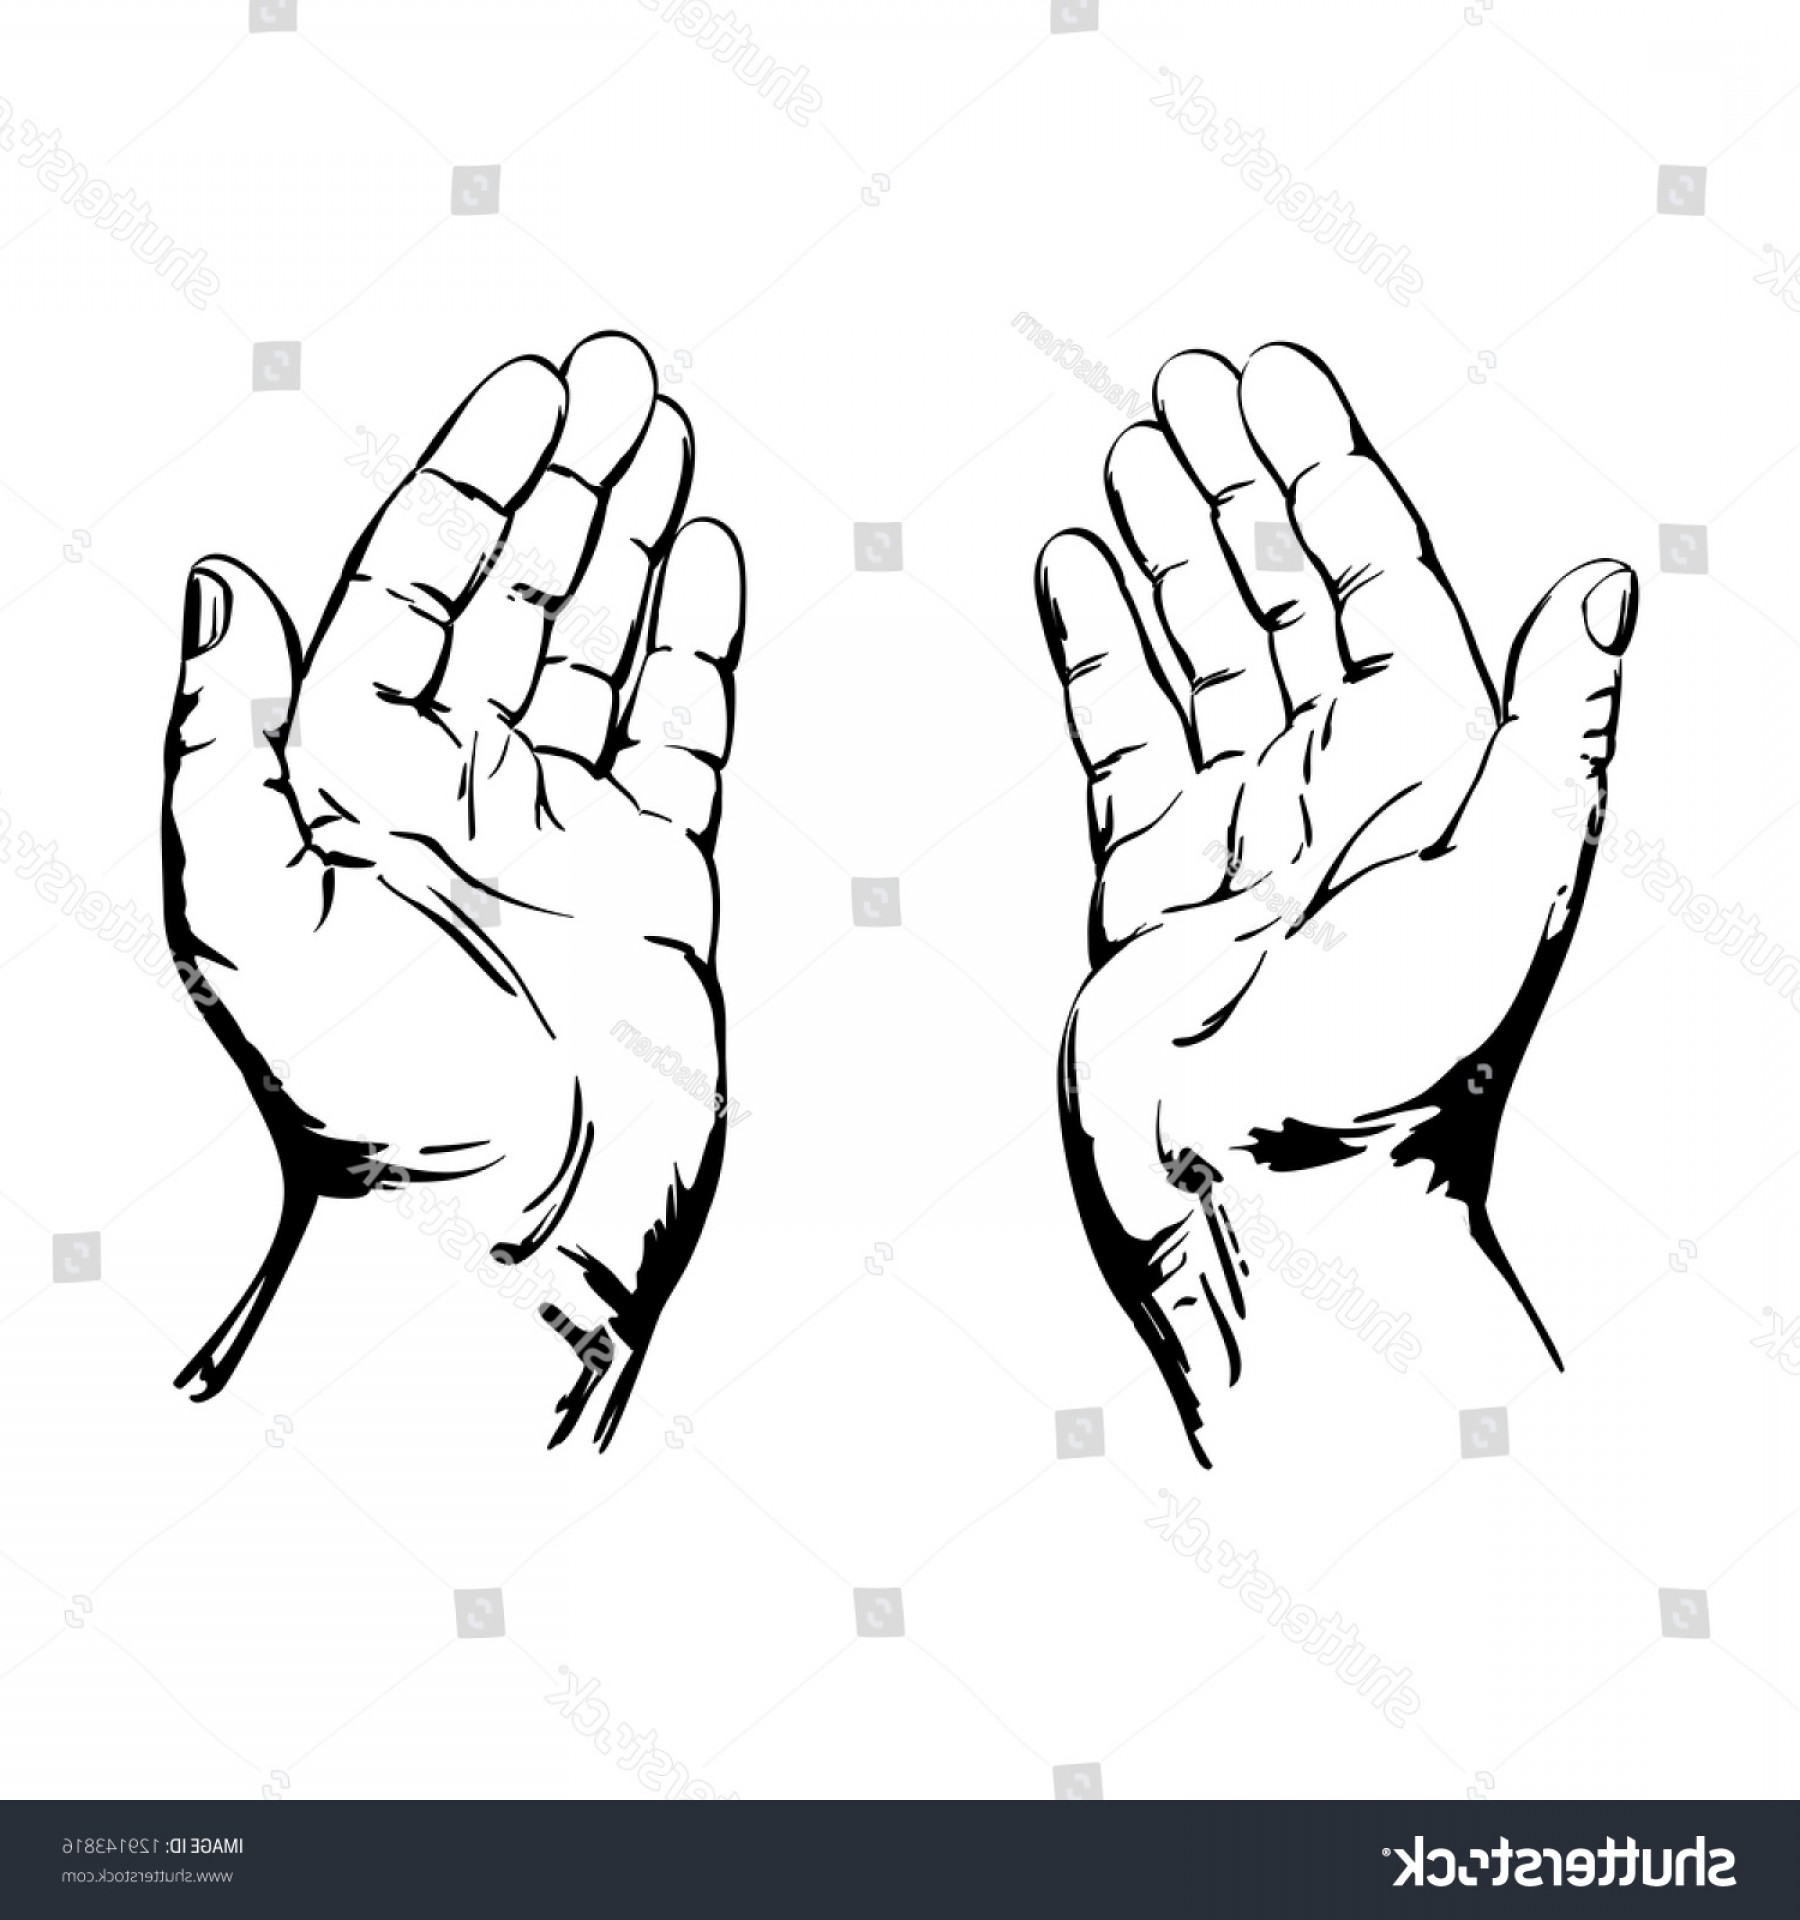 Praying Hands Vectors Shutterstock: Praying Hands Drawing Vector Illustration Realistic